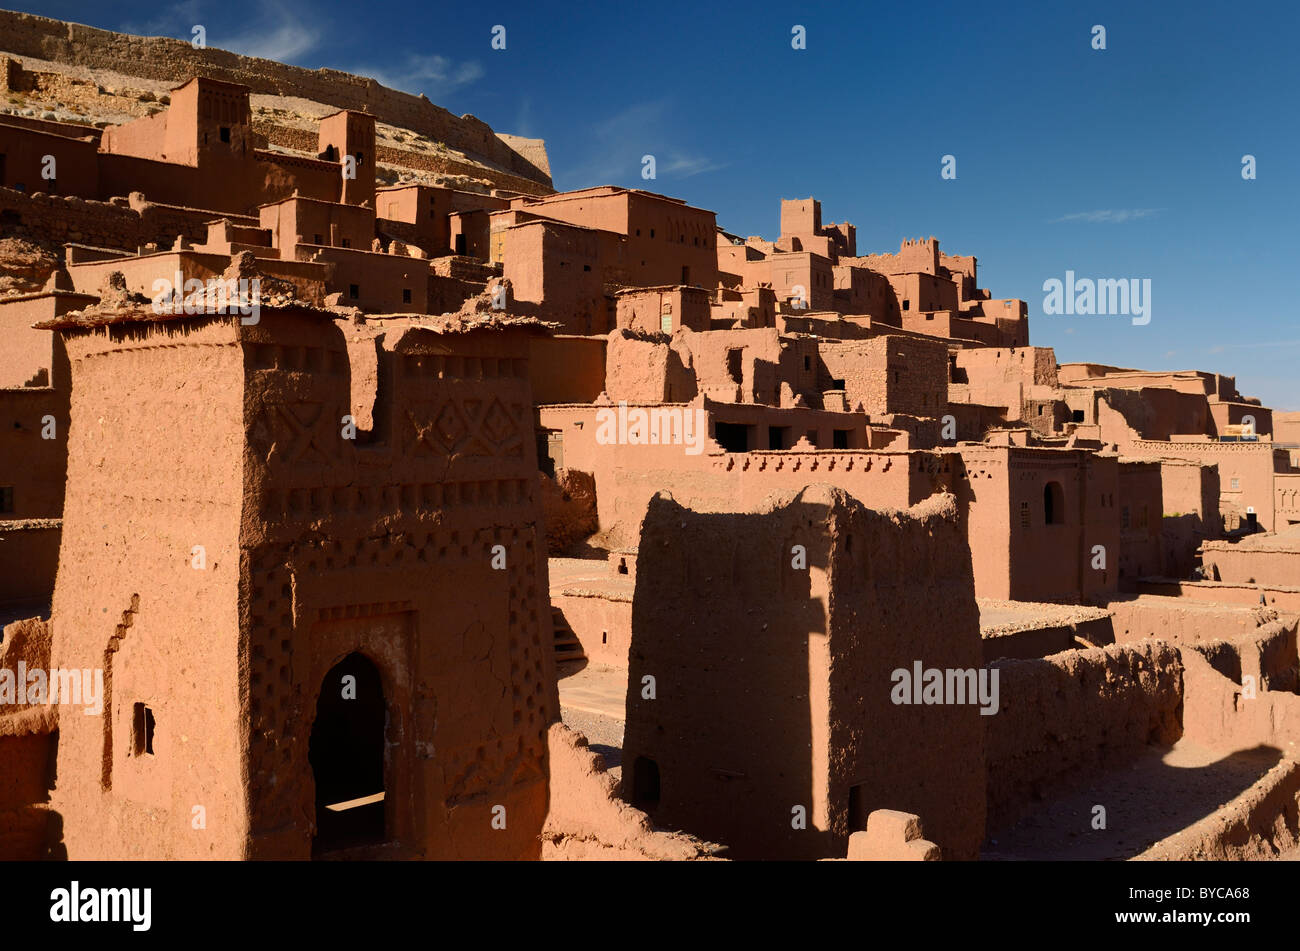 Ochre buildings at the historic earthen ksar of ancient city fortress of Ait Benhaddou near Ouarzazate Morocco - Stock Image